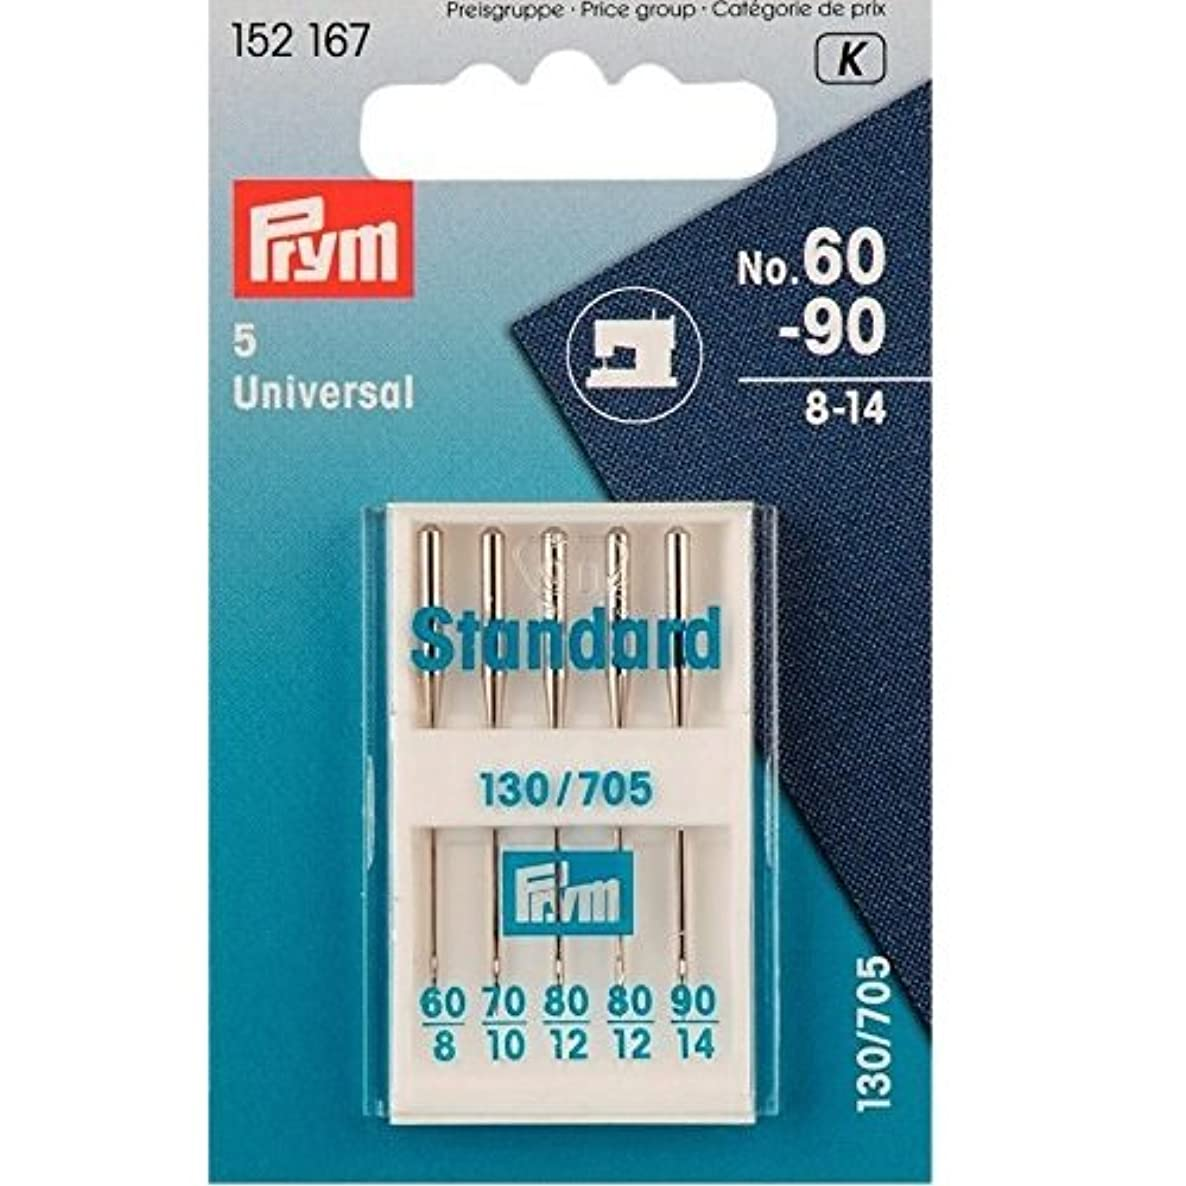 Prym 152167 Sewing machine needles with flat shank